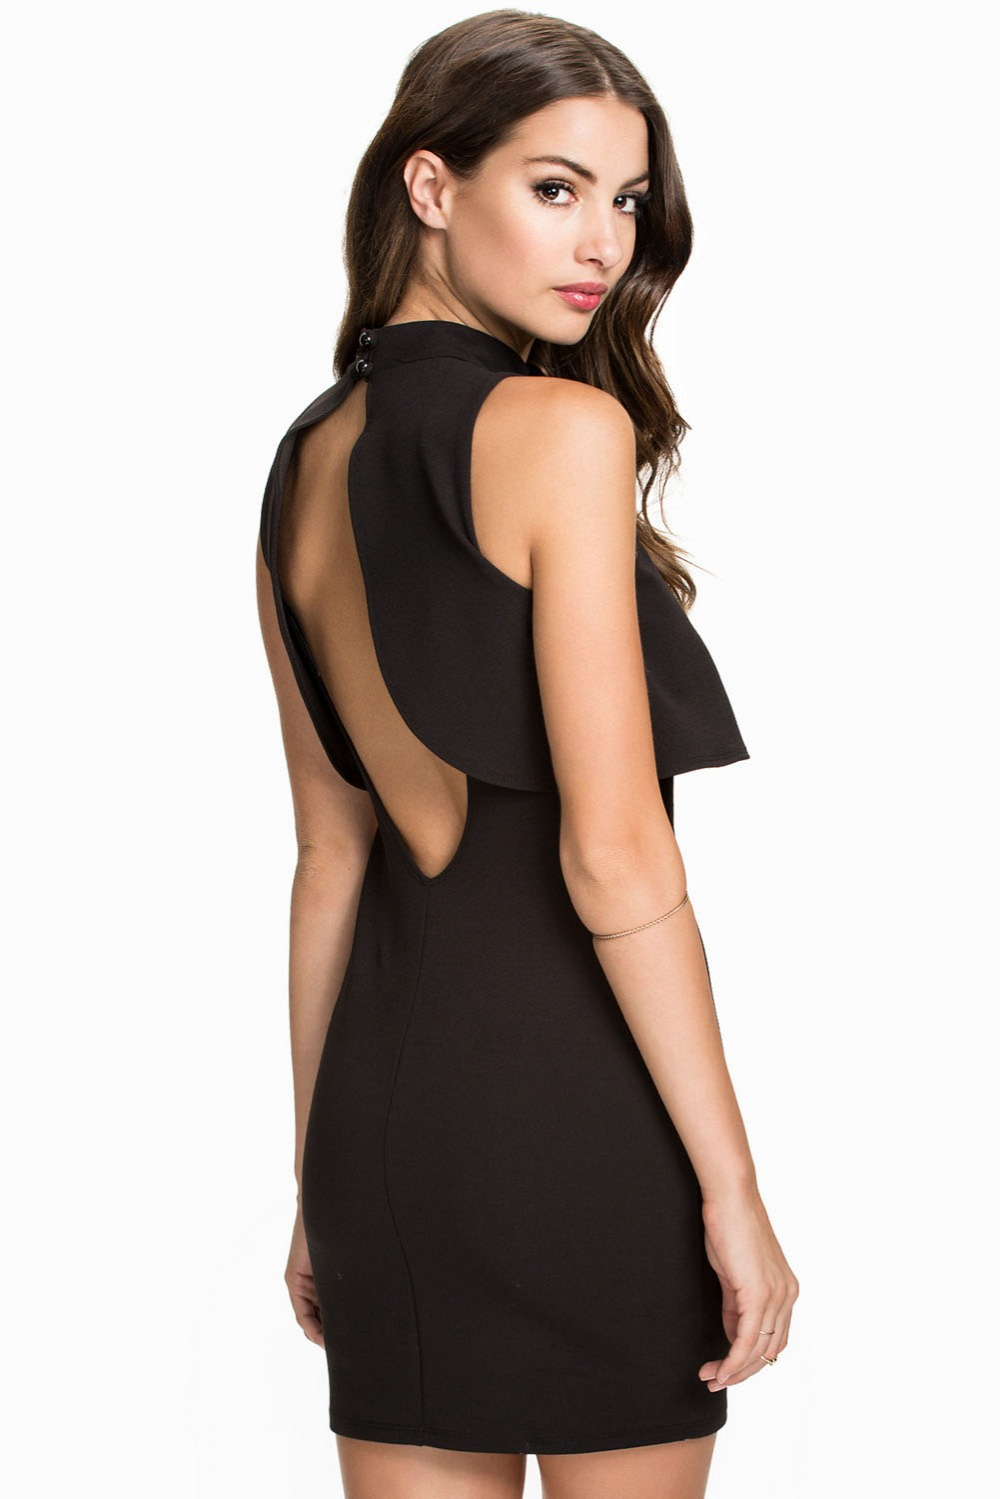 Backless dress party dress sexy dresses top overlay high neck little